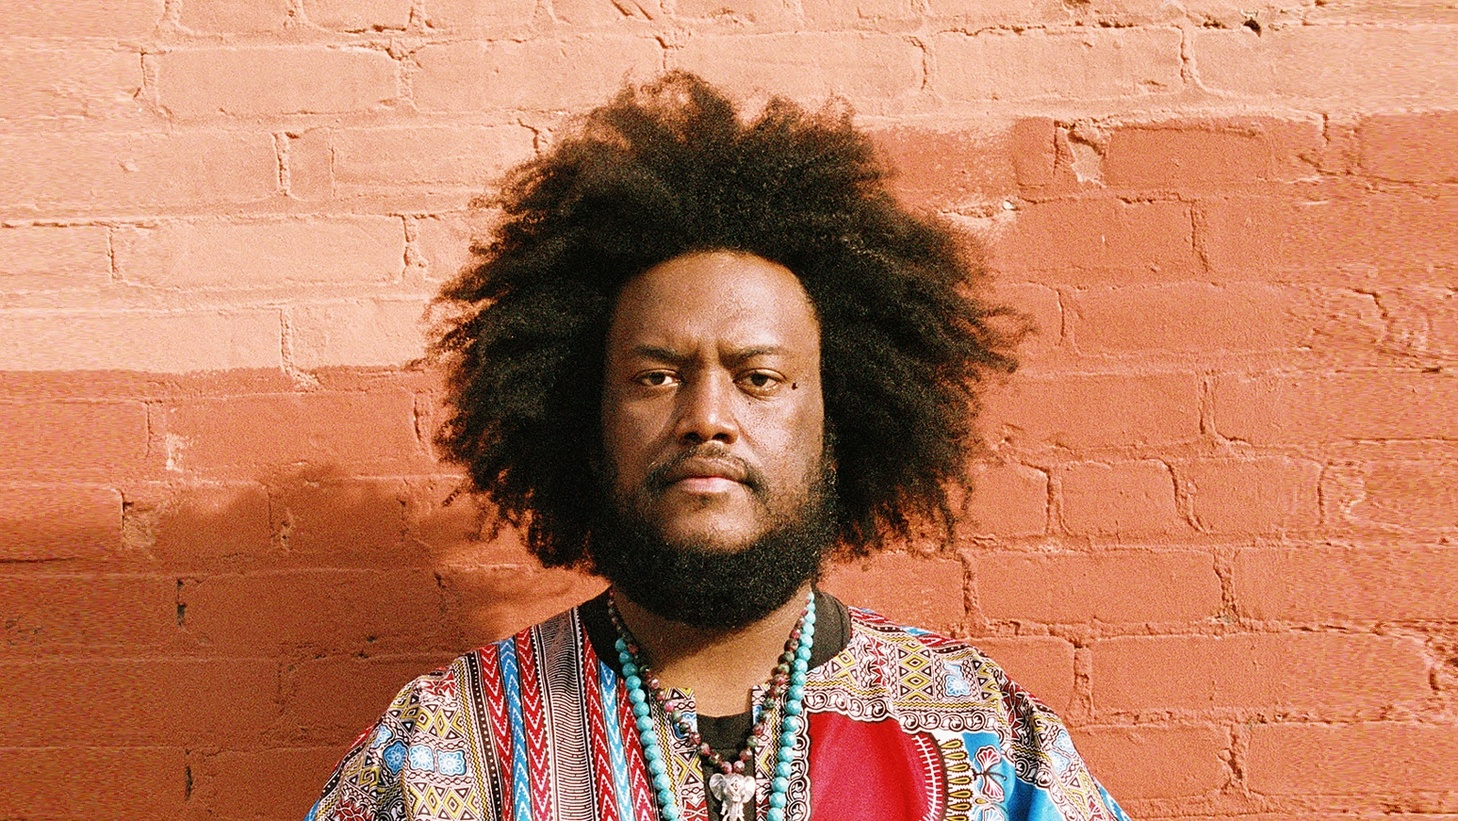 'There'll be some big surprises, I'll say that much,' Kamasi Washington says of his return to the Hollywood Bowl for KCRW's World Festival series.